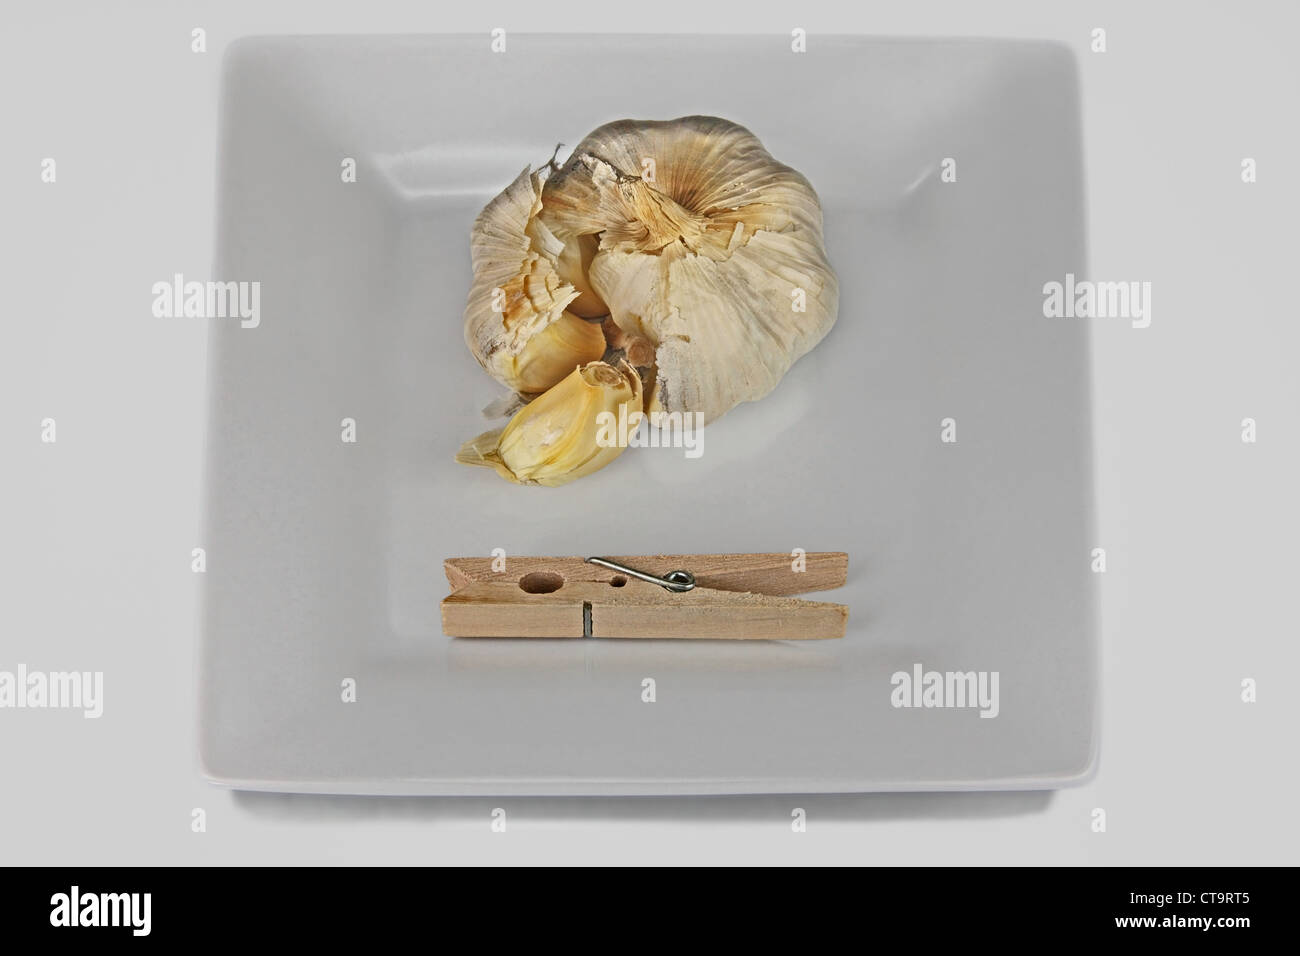 a square dish with cloves of garlic and a clothespin. The clothespin clamp is to hold your nose - Stock Image